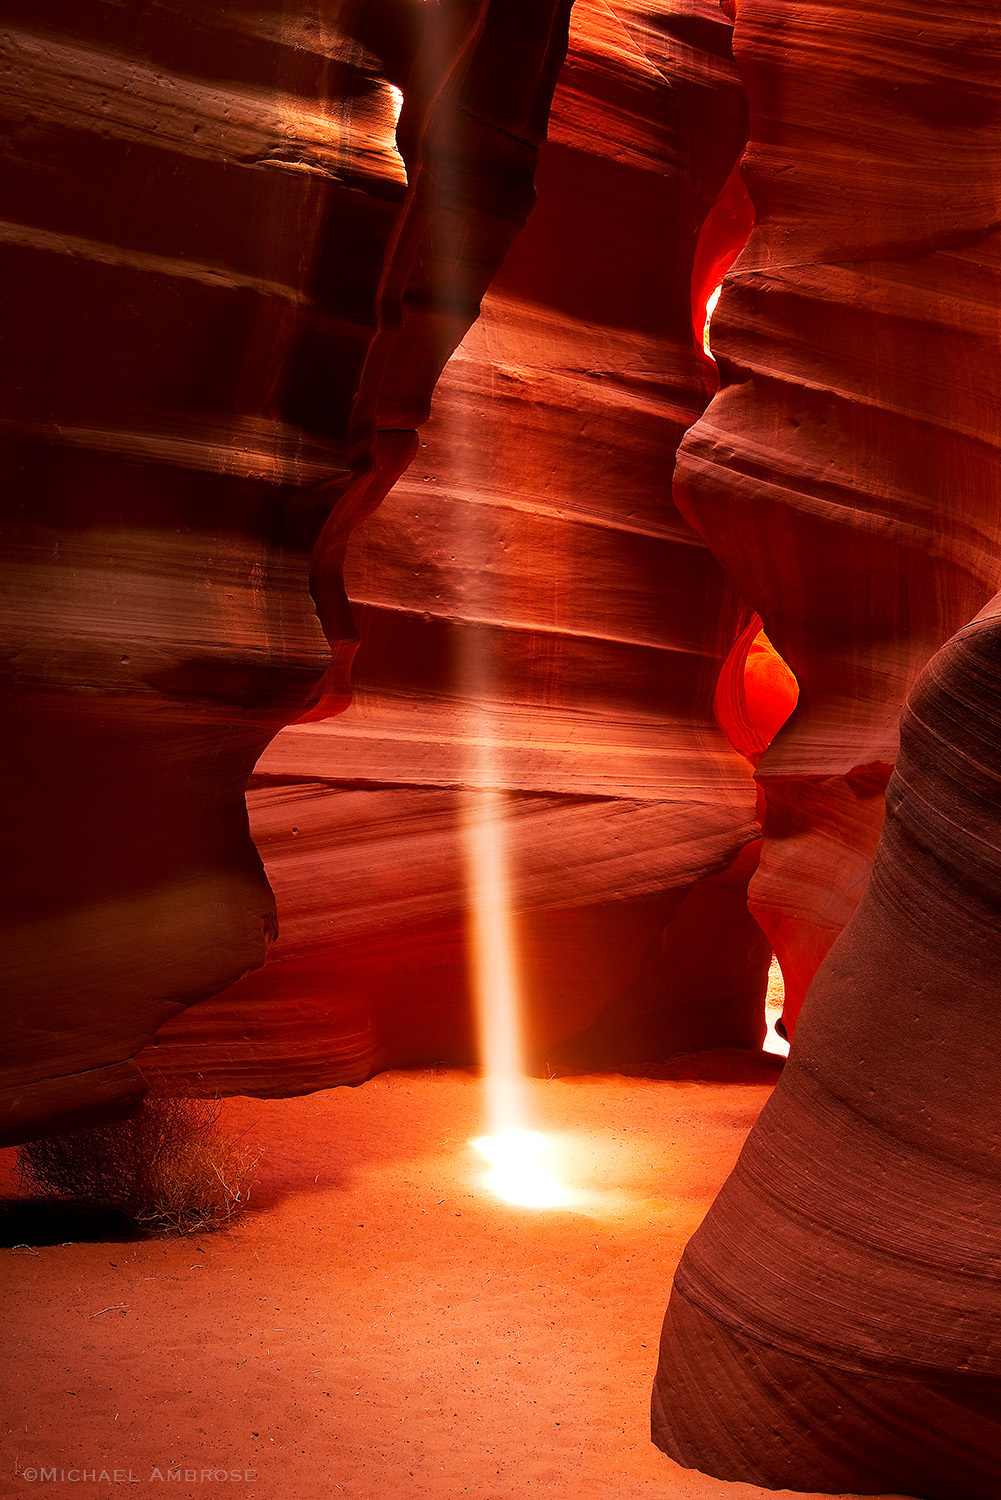 A beam of light cuts through the slot canyon of sandstone at Antelope Canyon in Page, Arizona.